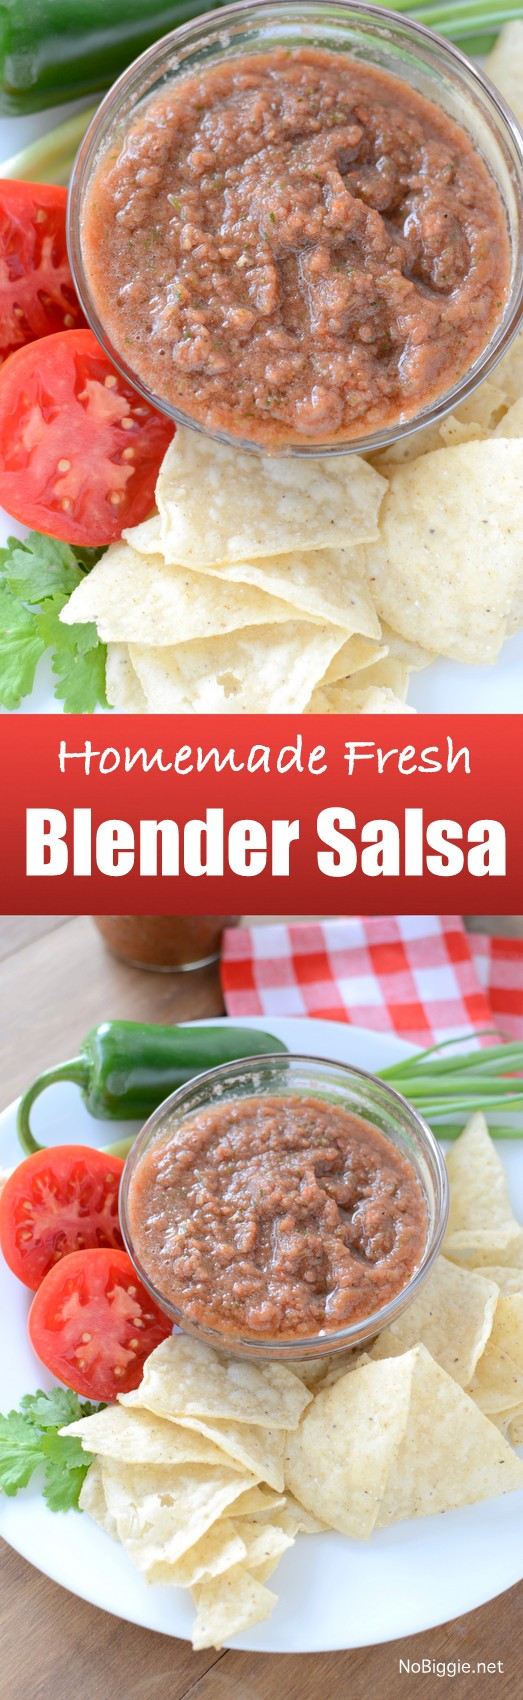 Homemade Fresh Blender Salsa | NoBiggie.net